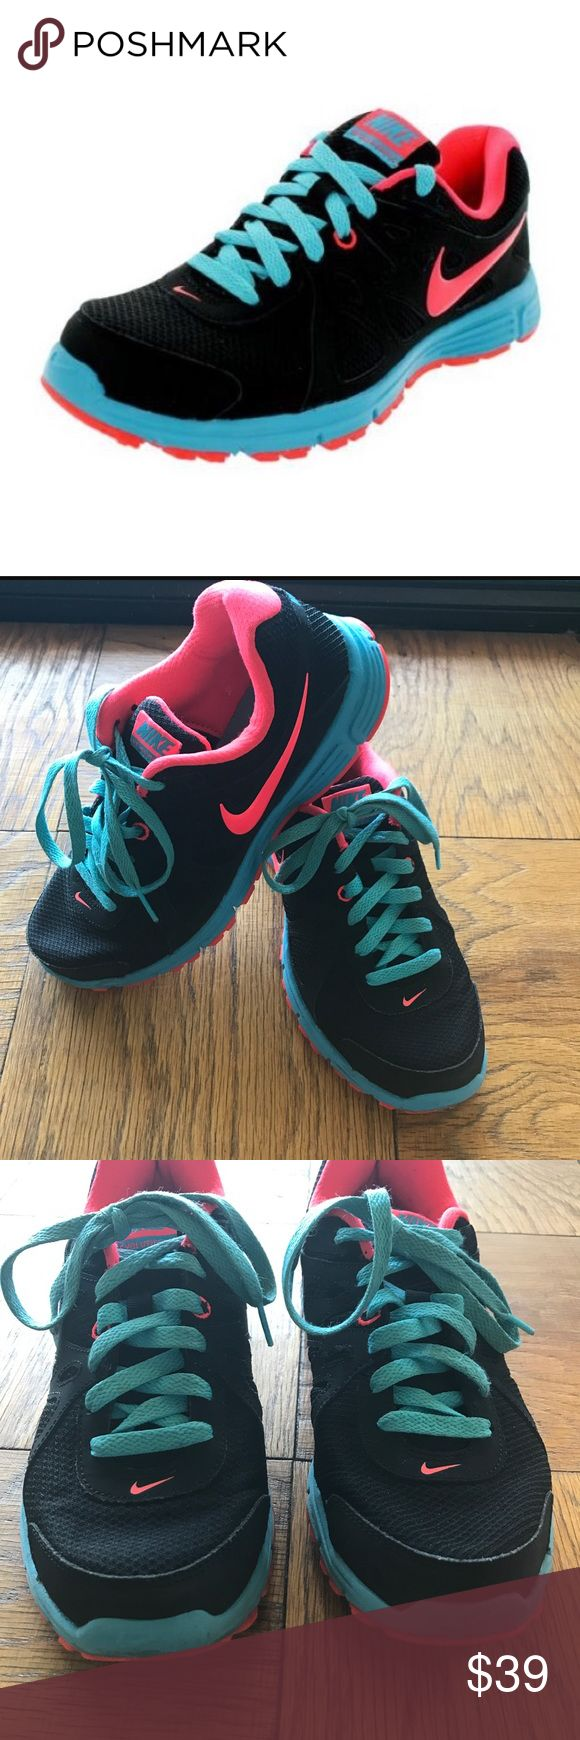 Nike  revolution 2 sneakers size 8.5 woman's 😍 Amazing pair of Nike sneakers in size 8.5 worn only 2 times in great condition light weight and flexible Nike Shoes Sneakers